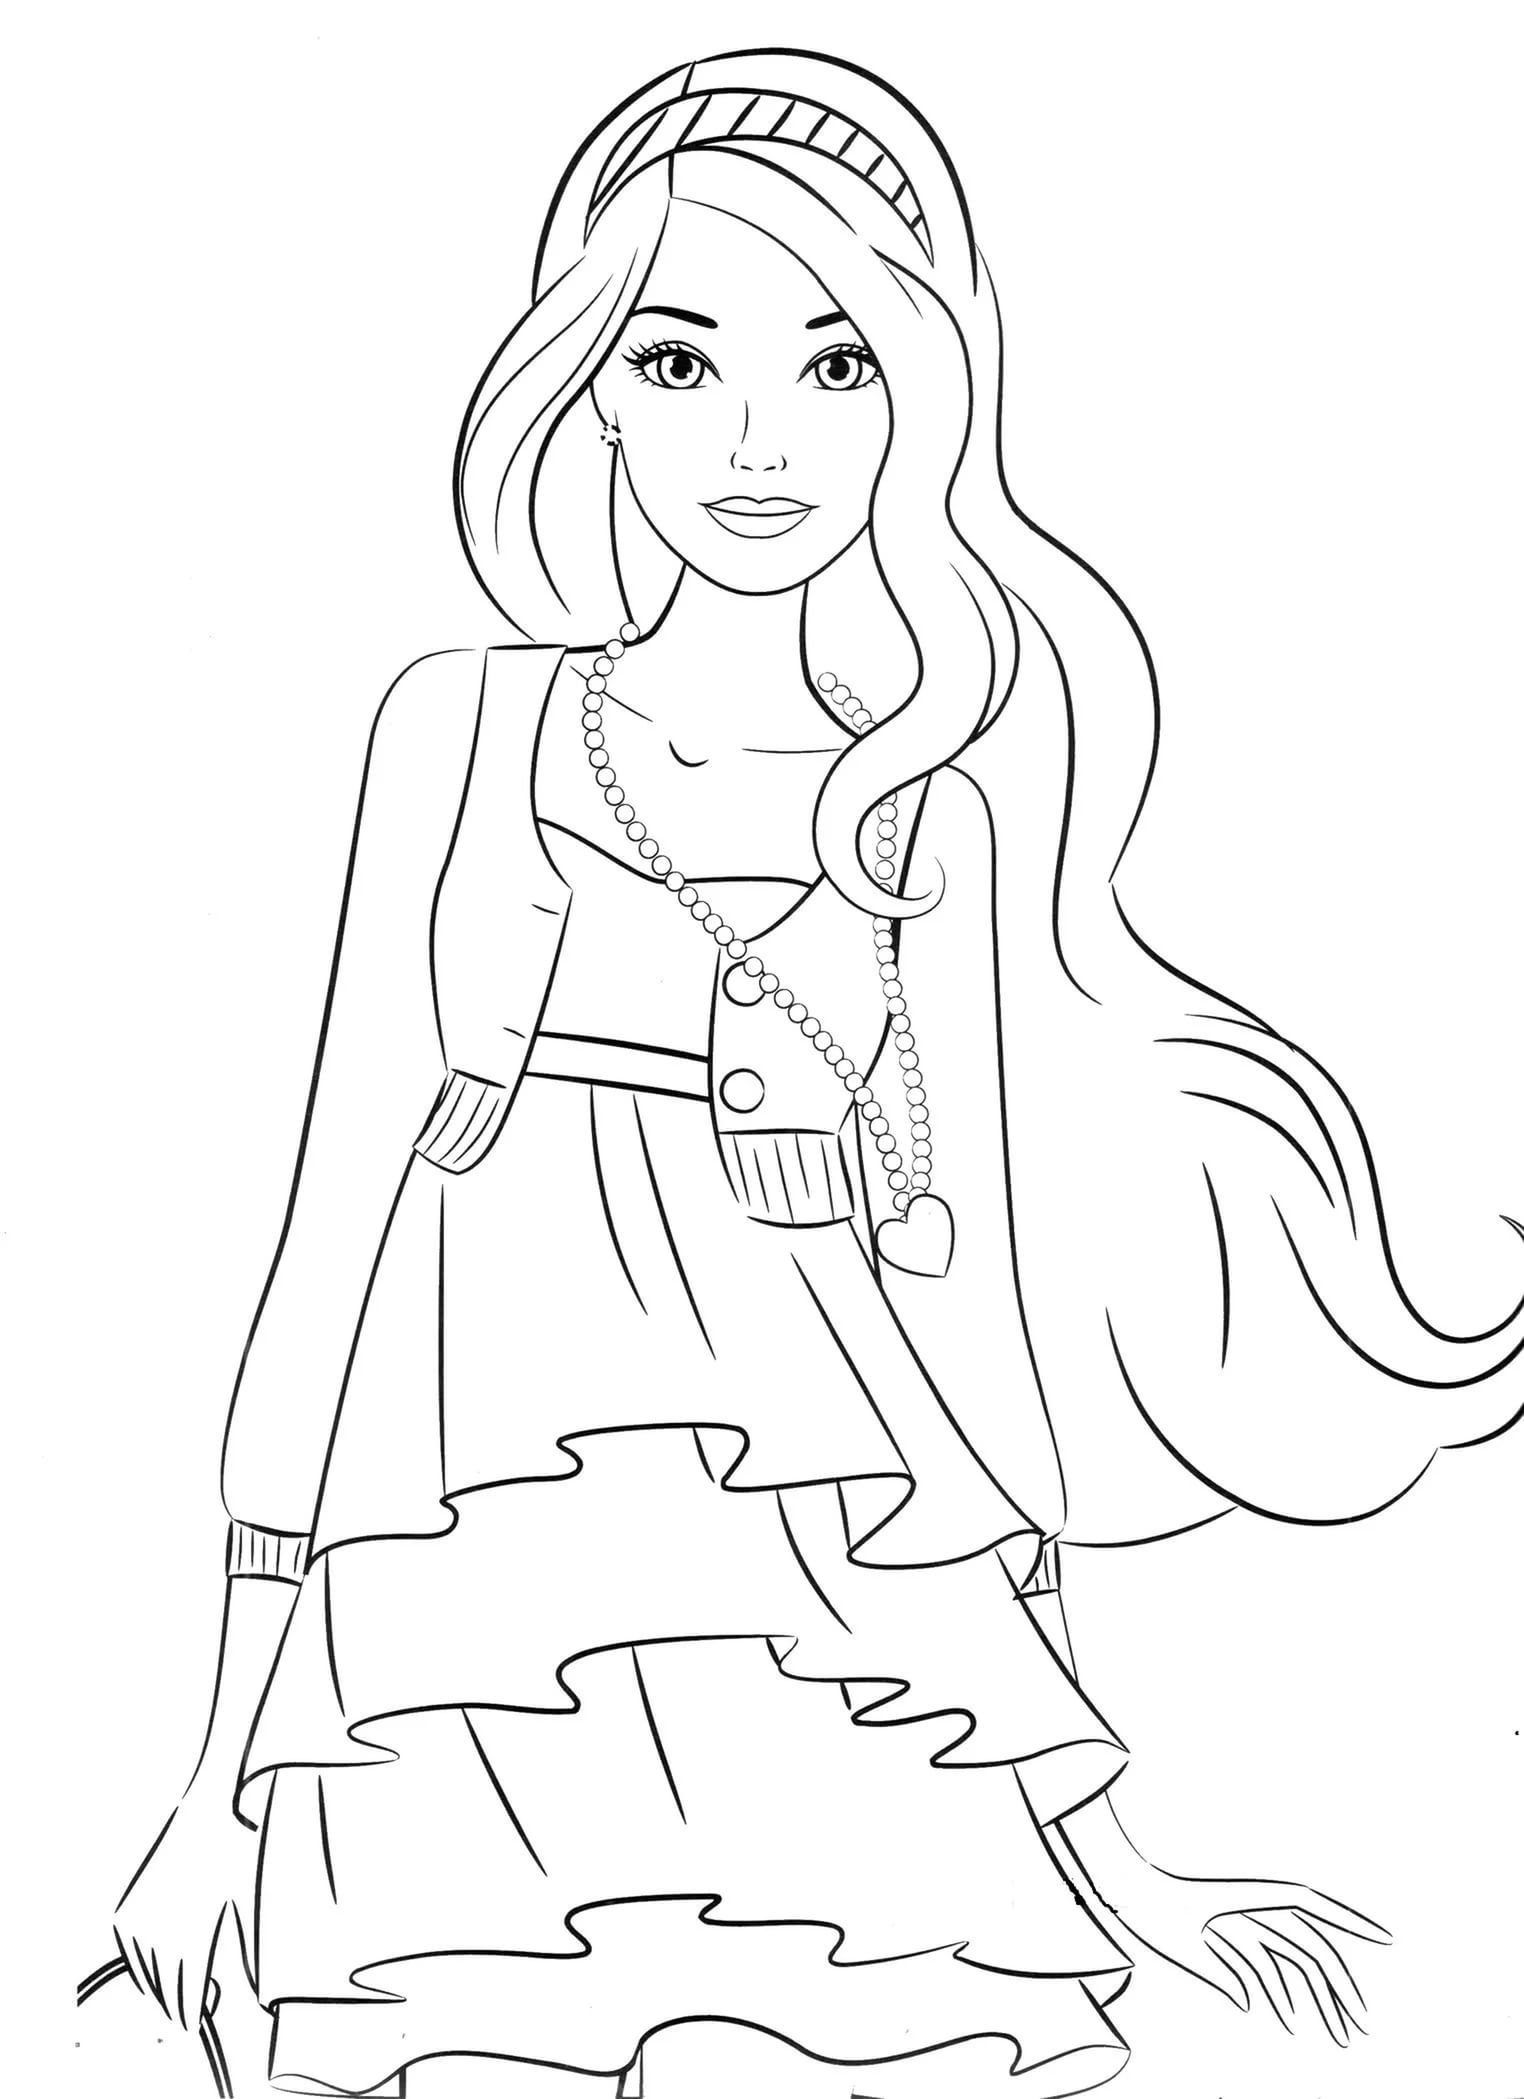 25 Coloring Pages 9 Year Old Free Coloring Sheets Coloring Sheets